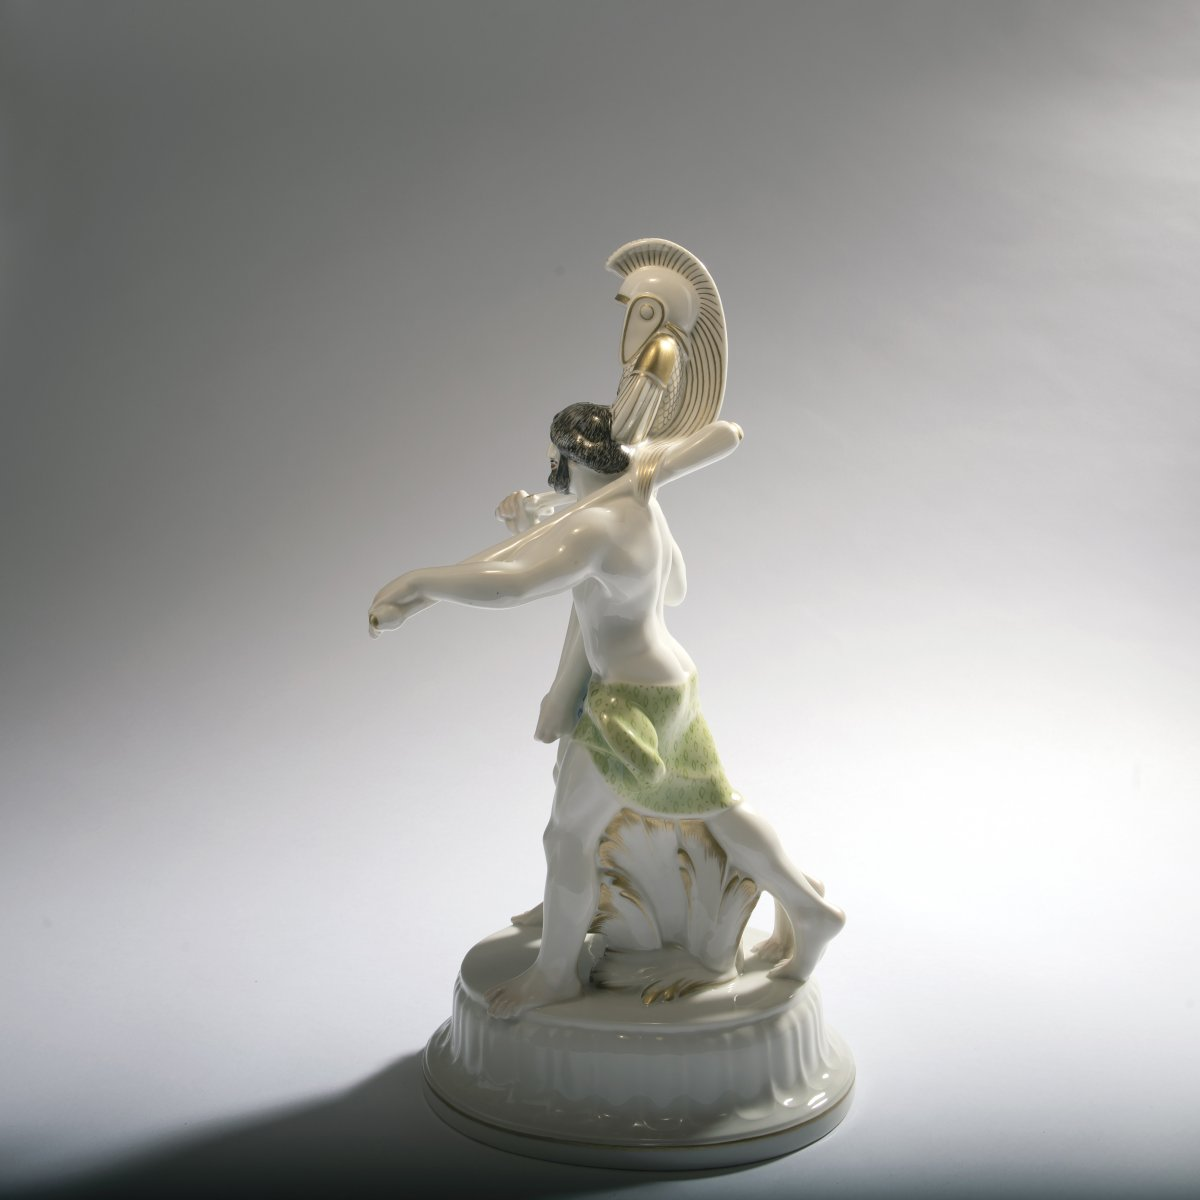 Lot 58 - Adolph Amberg, 'Two Etruscans', 1910'Two Etruscans', 1910H. 41.3 cm. Made by KPM Berlin,